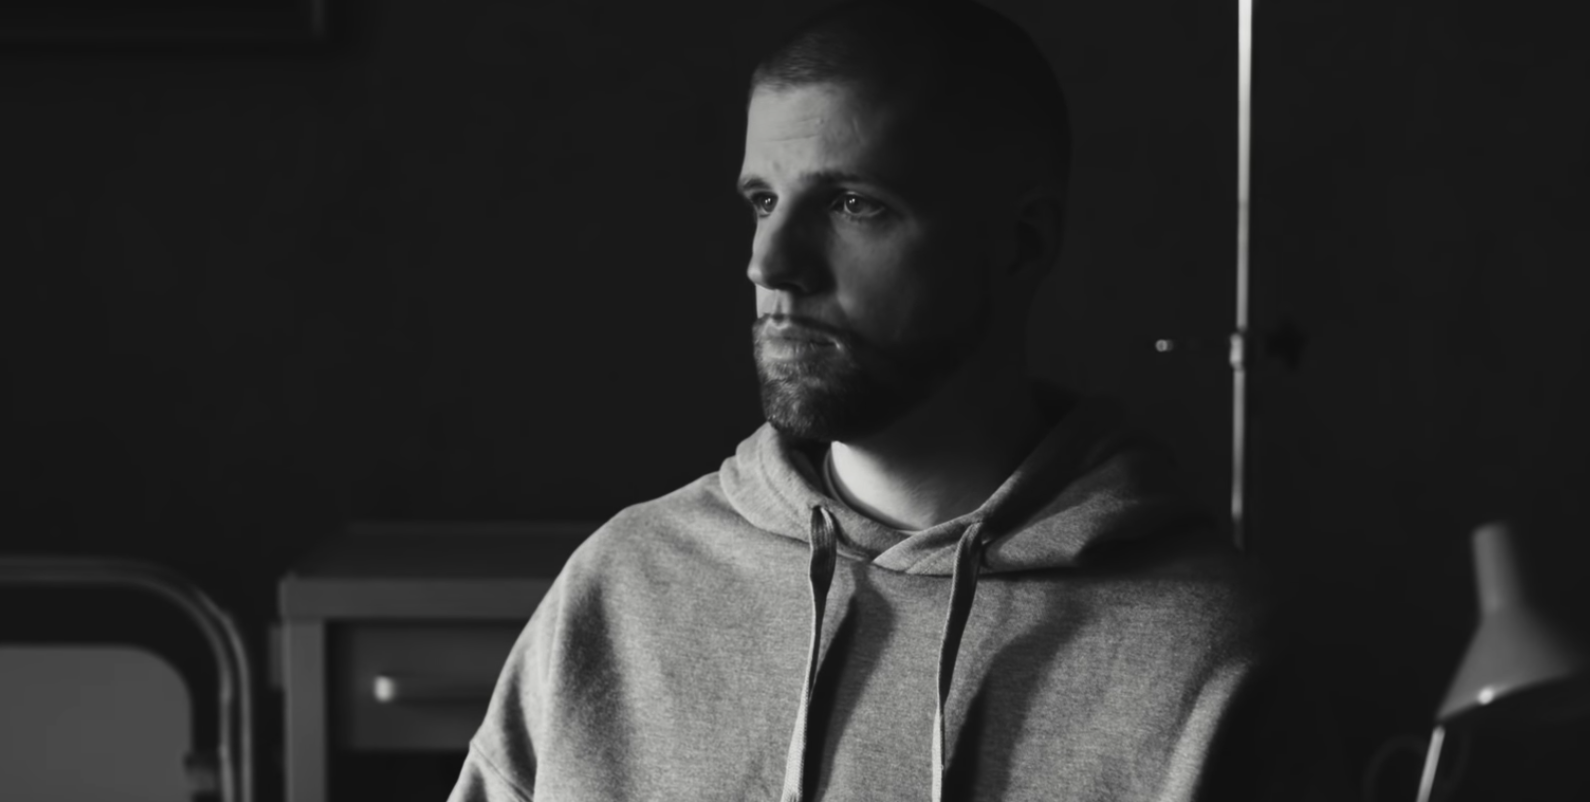 Tua - Vater (Video) | 16BARS.DE